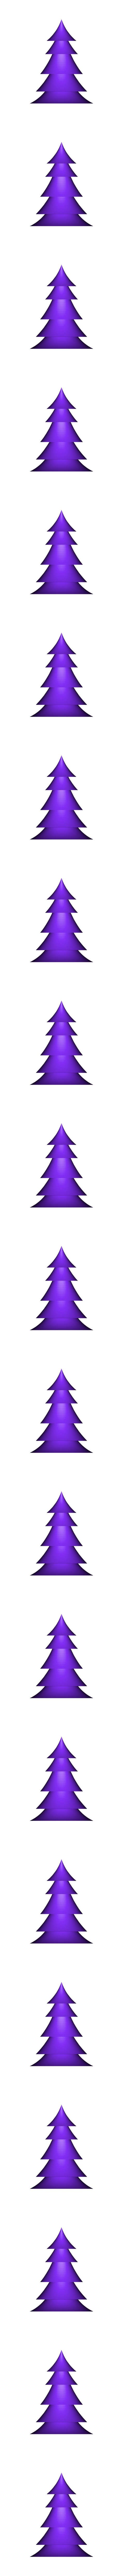 Tree top.stl Download free STL file Table top Christmas tree • 3D printing object, Brahmabeej